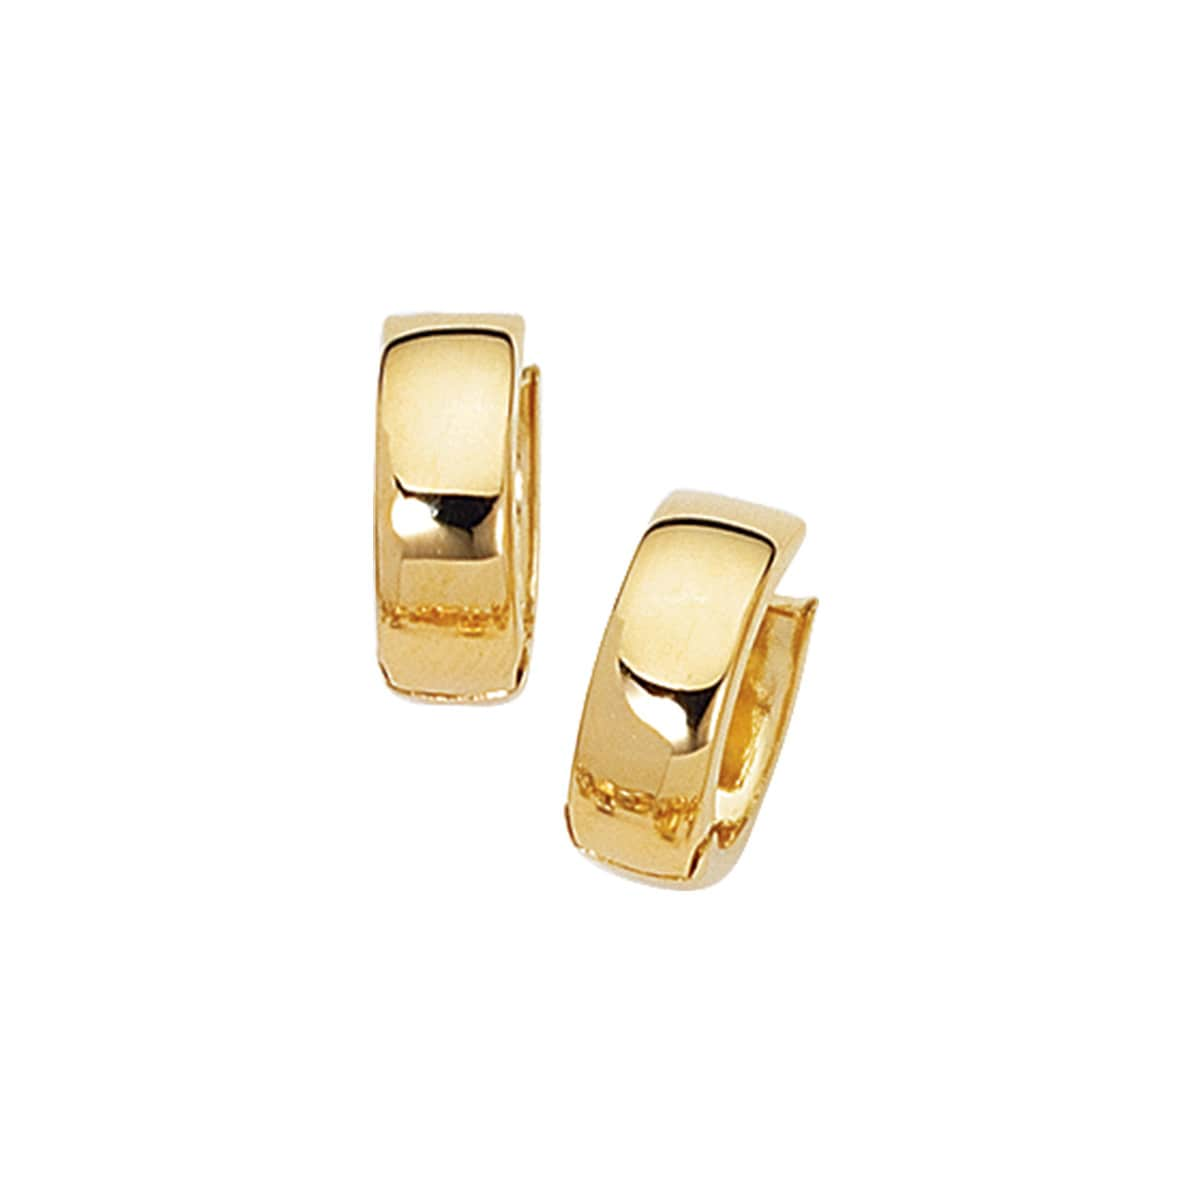 earring mounting yellow round product set filled snap with setting back lever earrings gold